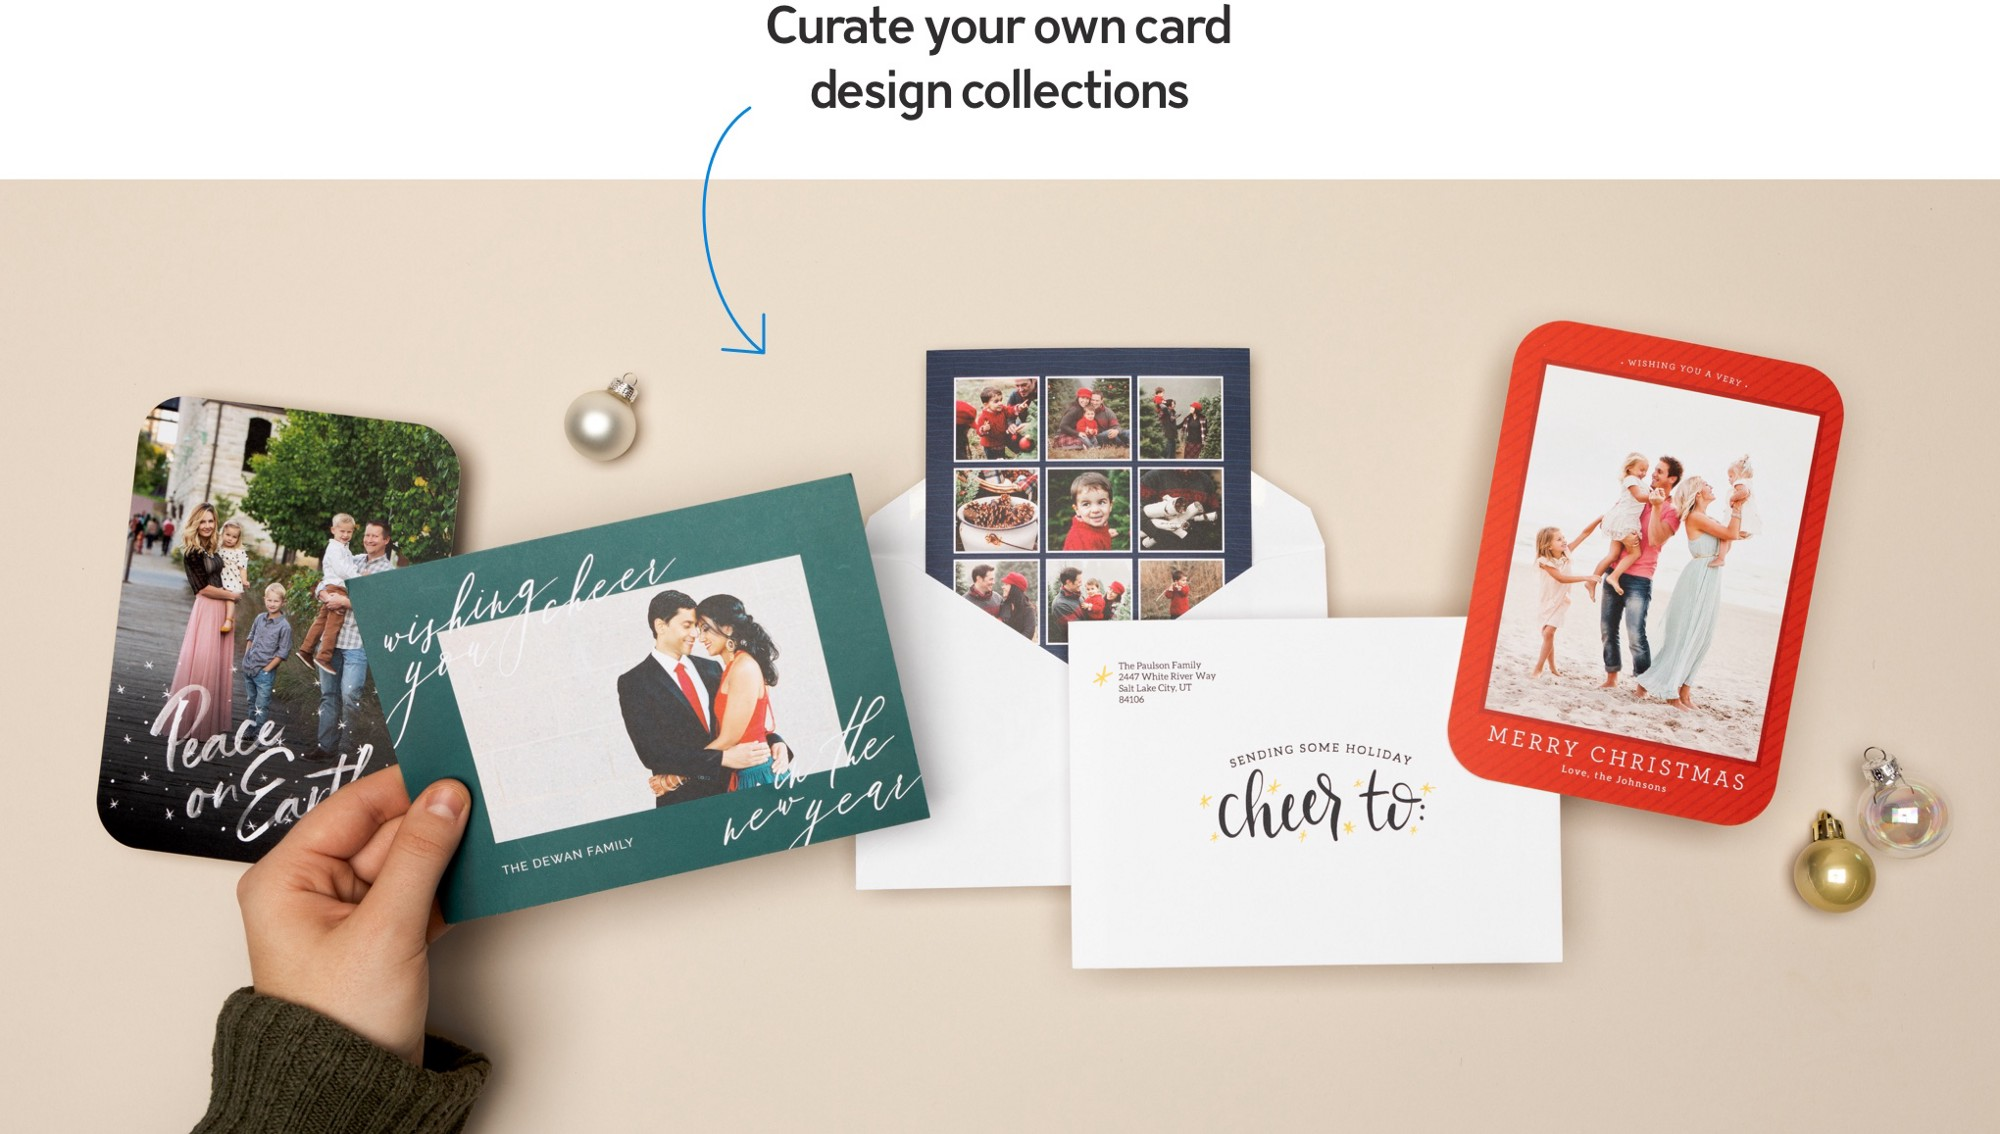 Curate your own card design collection